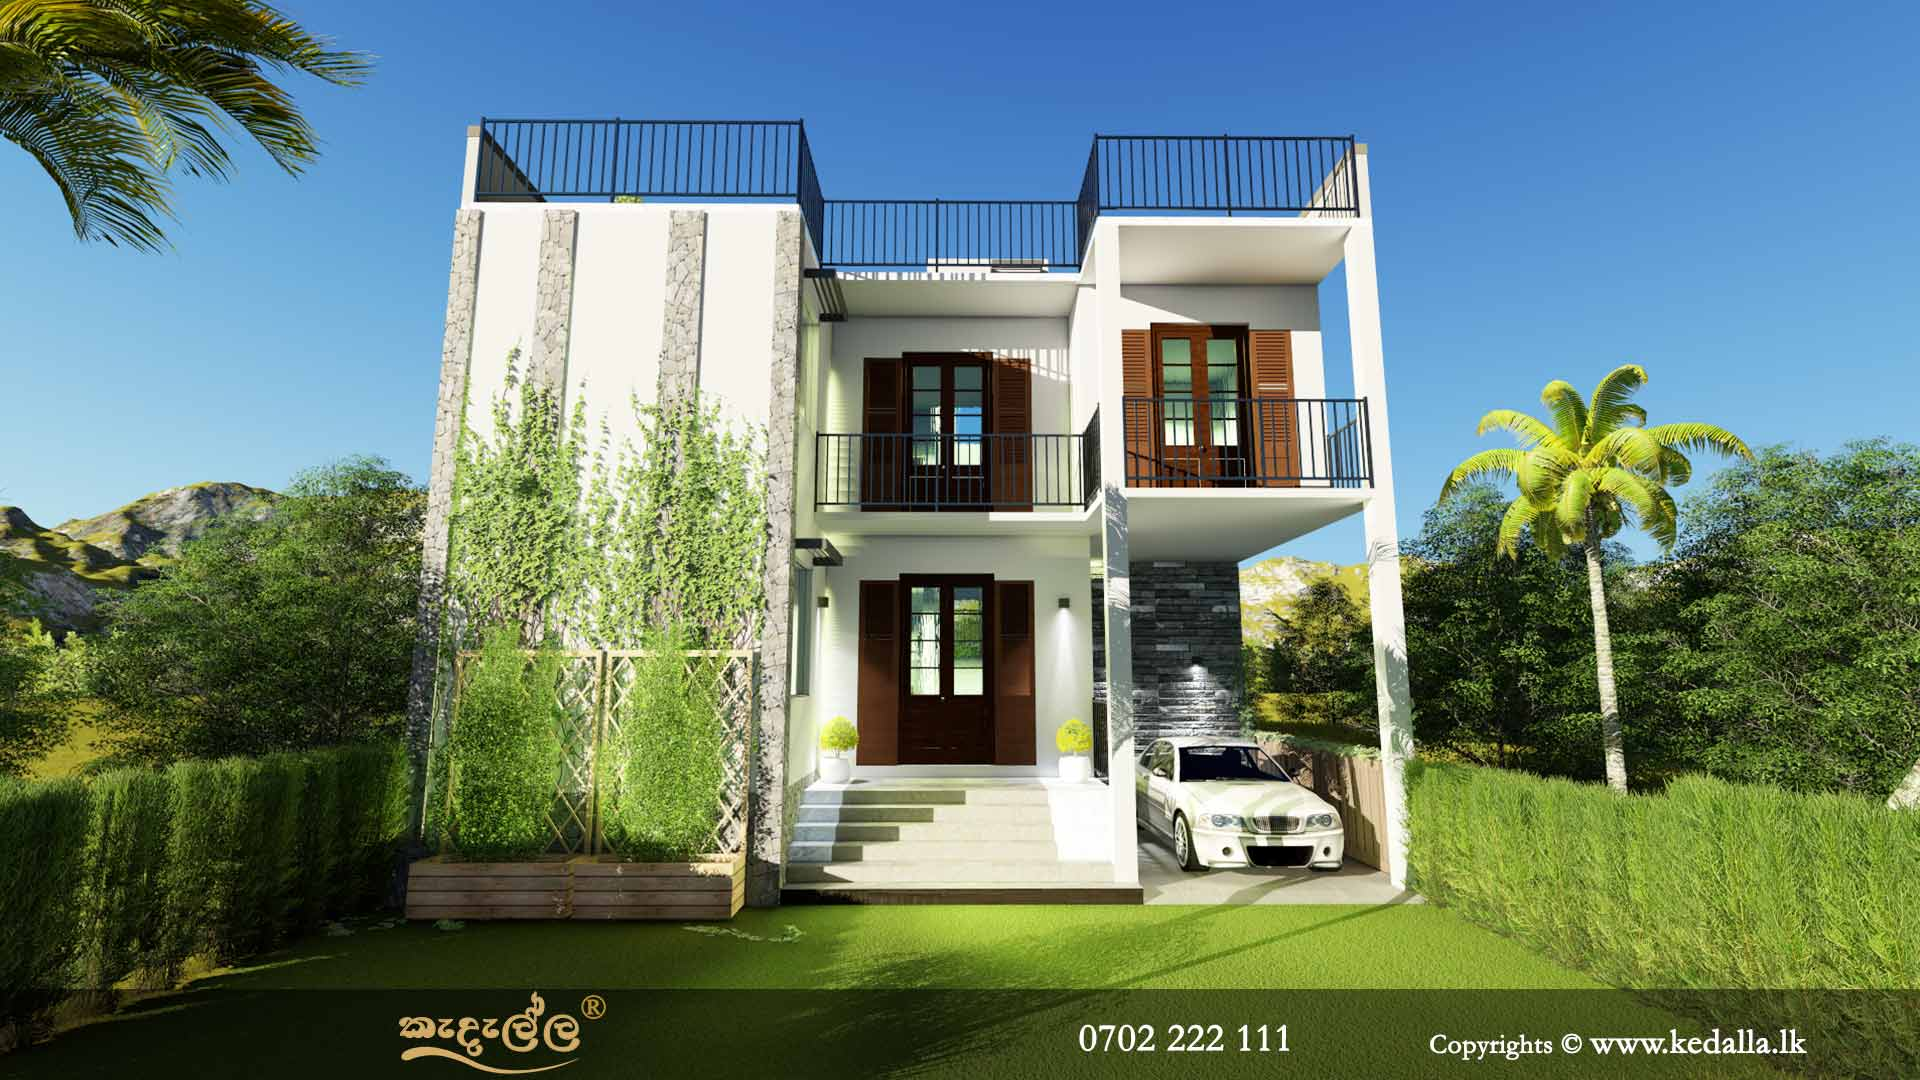 An architect in sri lanka designed luxury box type house plan - 22+ Small House Box Type Design  Pictures